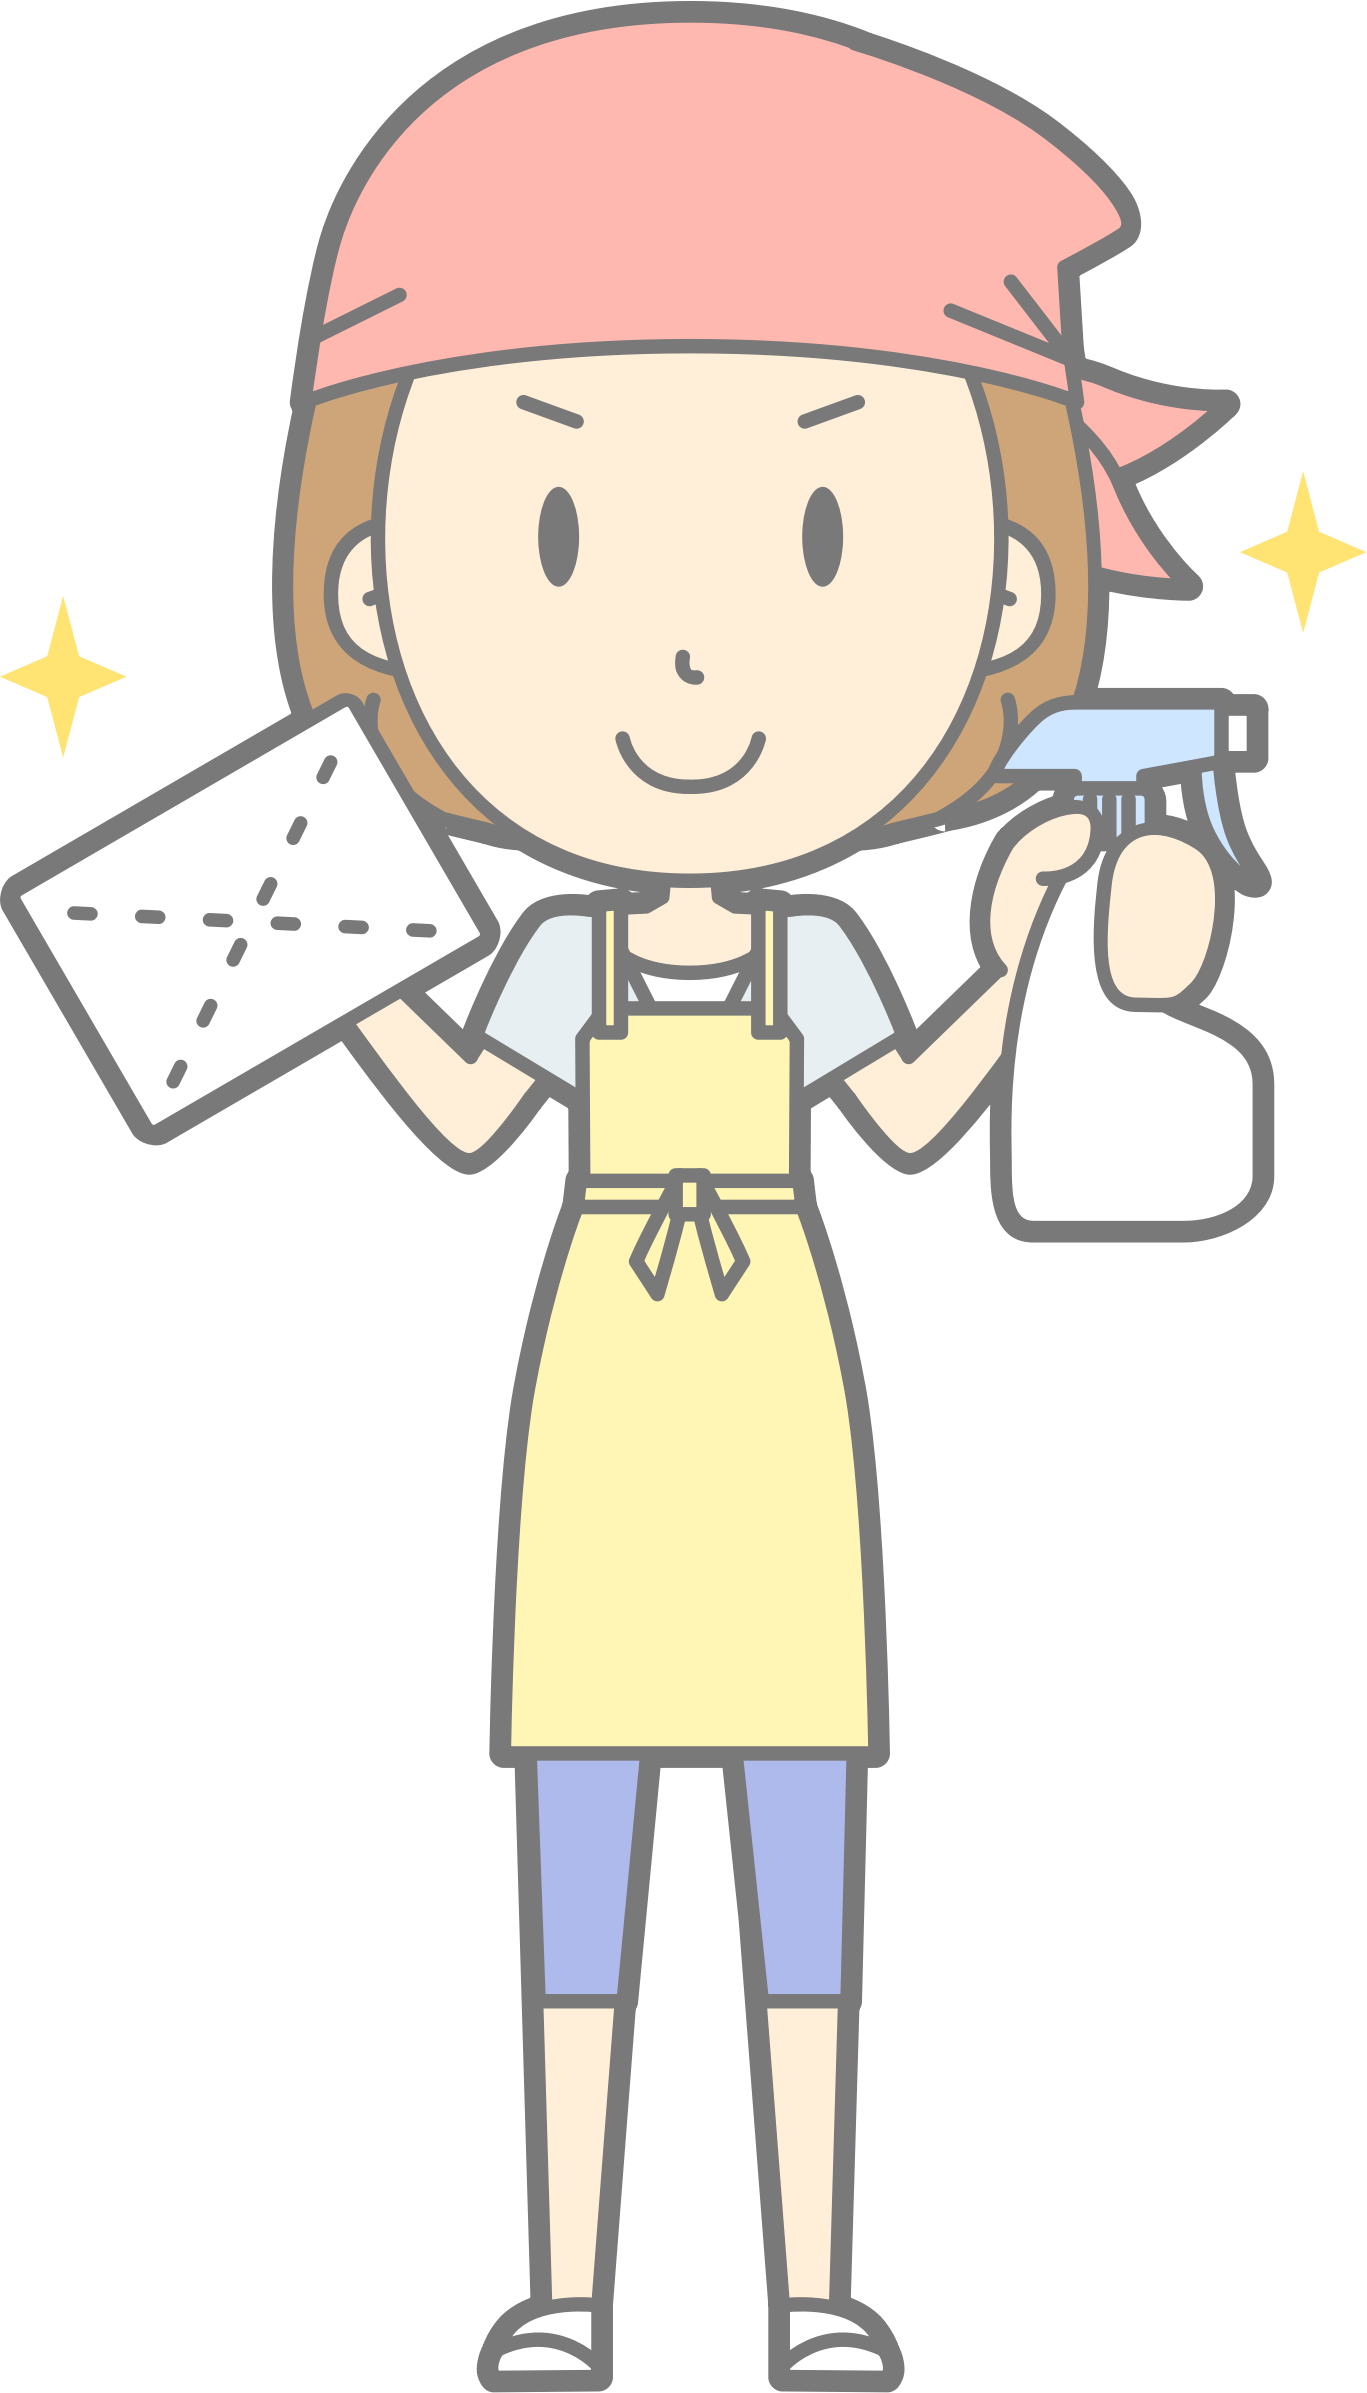 Clipart person cleaning. Window cleaner big image